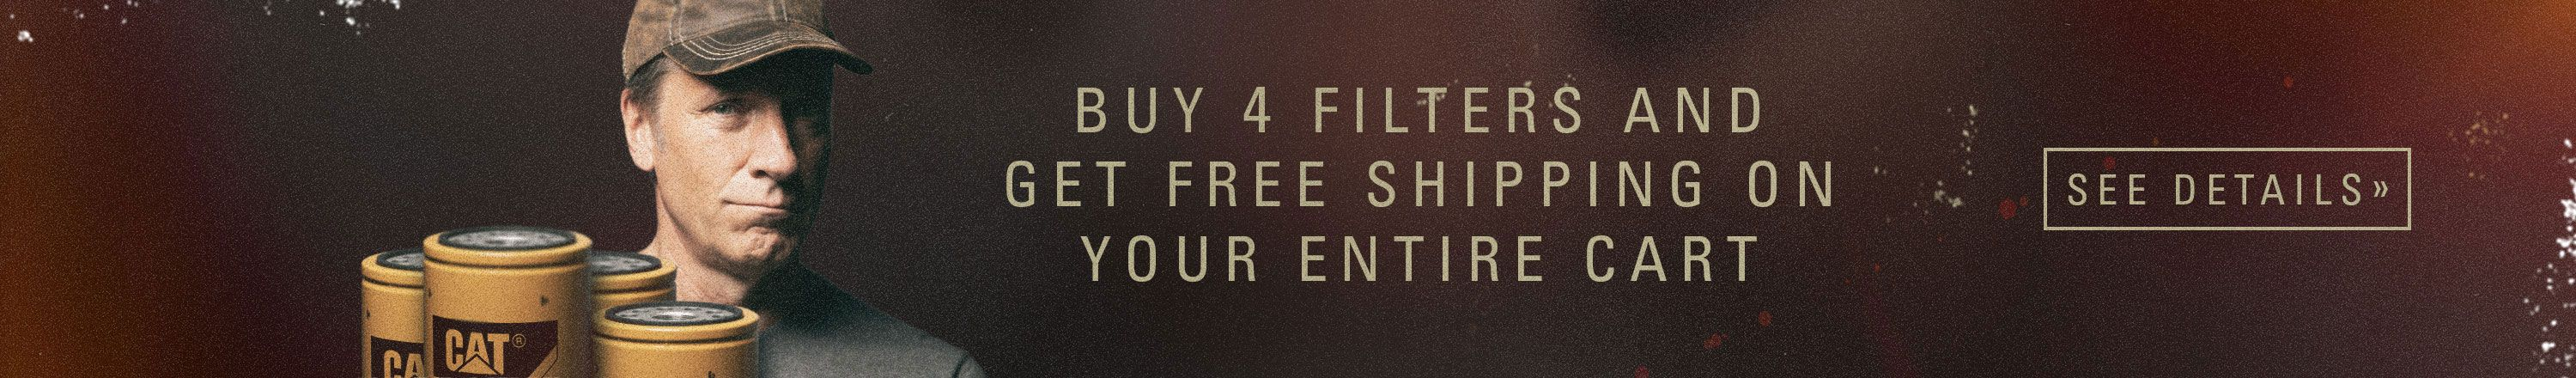 Buy 4 Filters Get Free Shipping